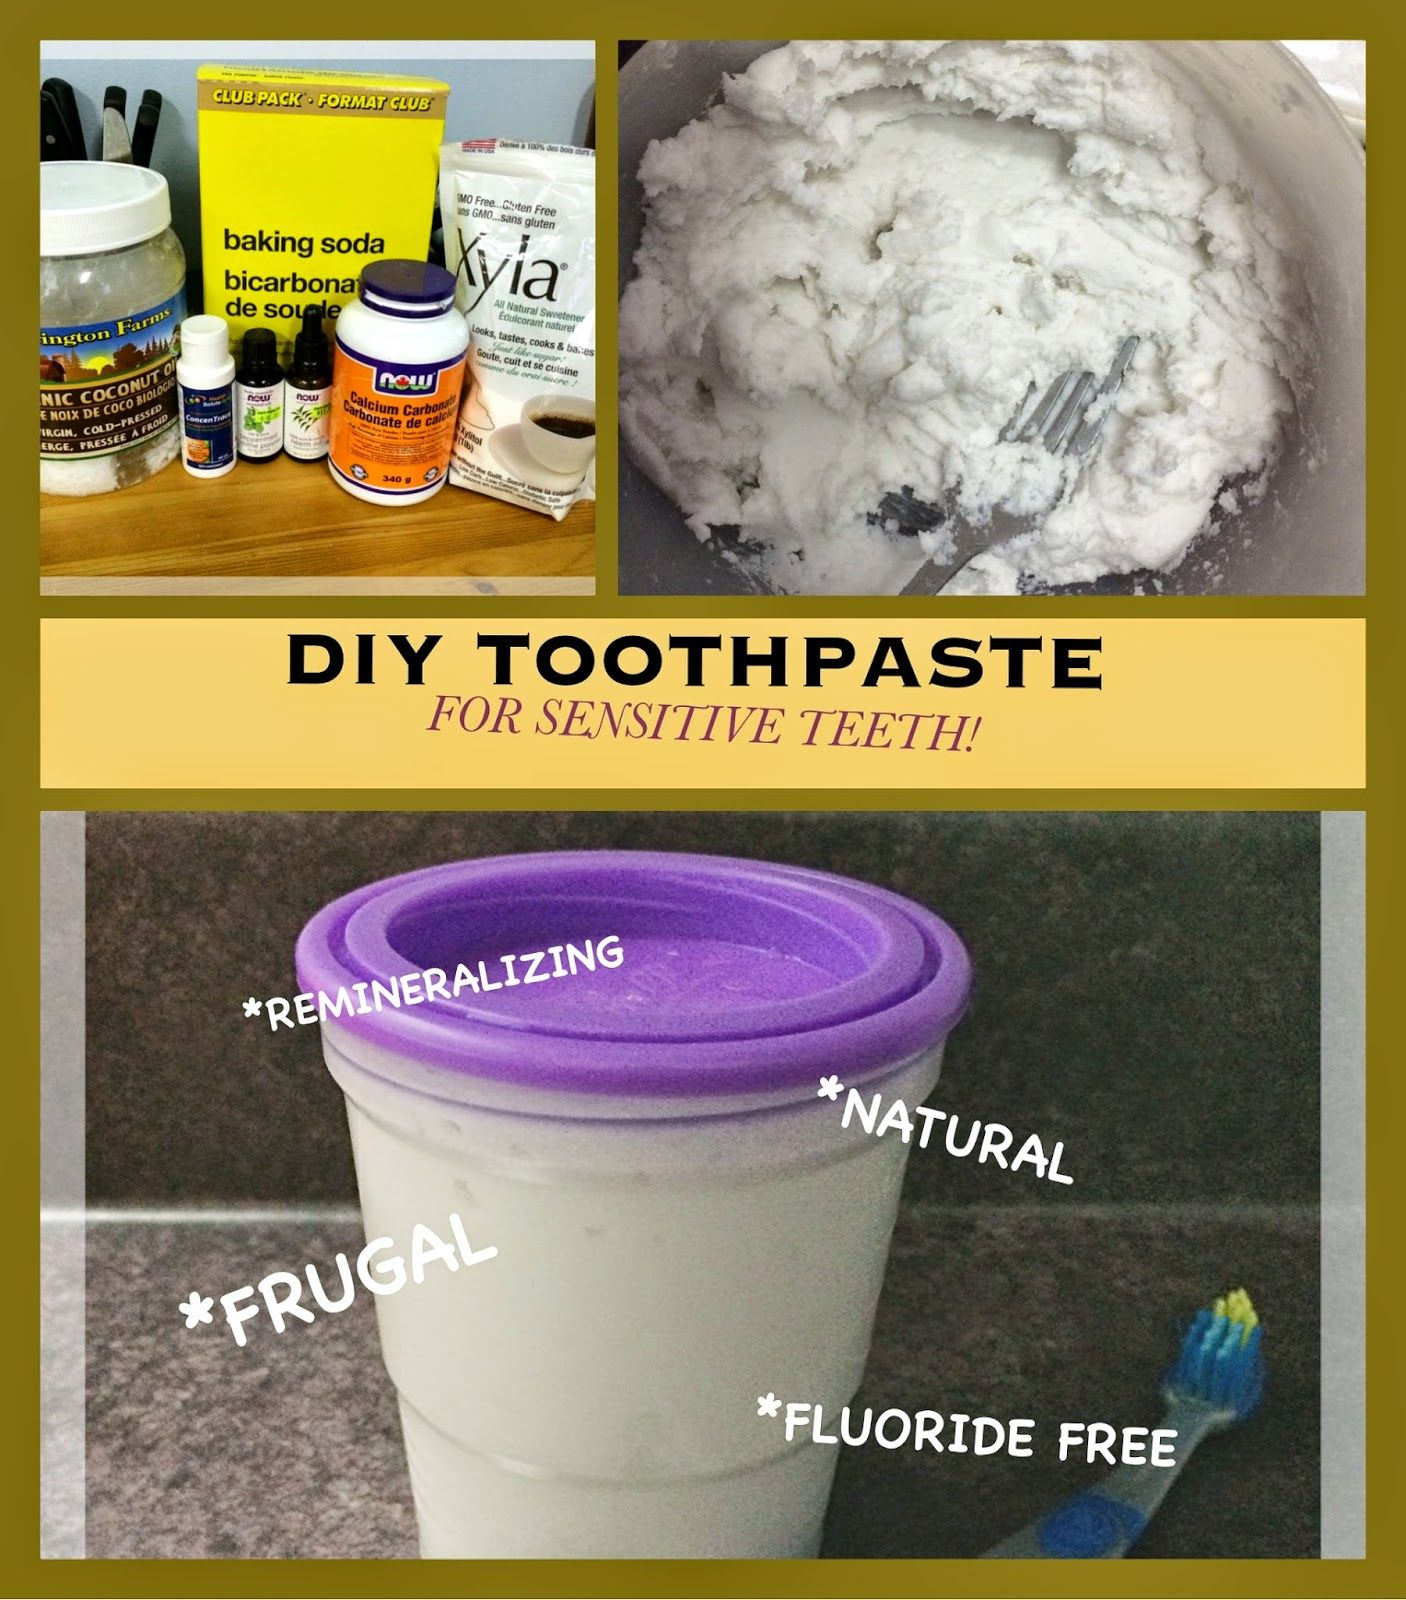 Diy remineralizing toothpaste for sensitive teeth